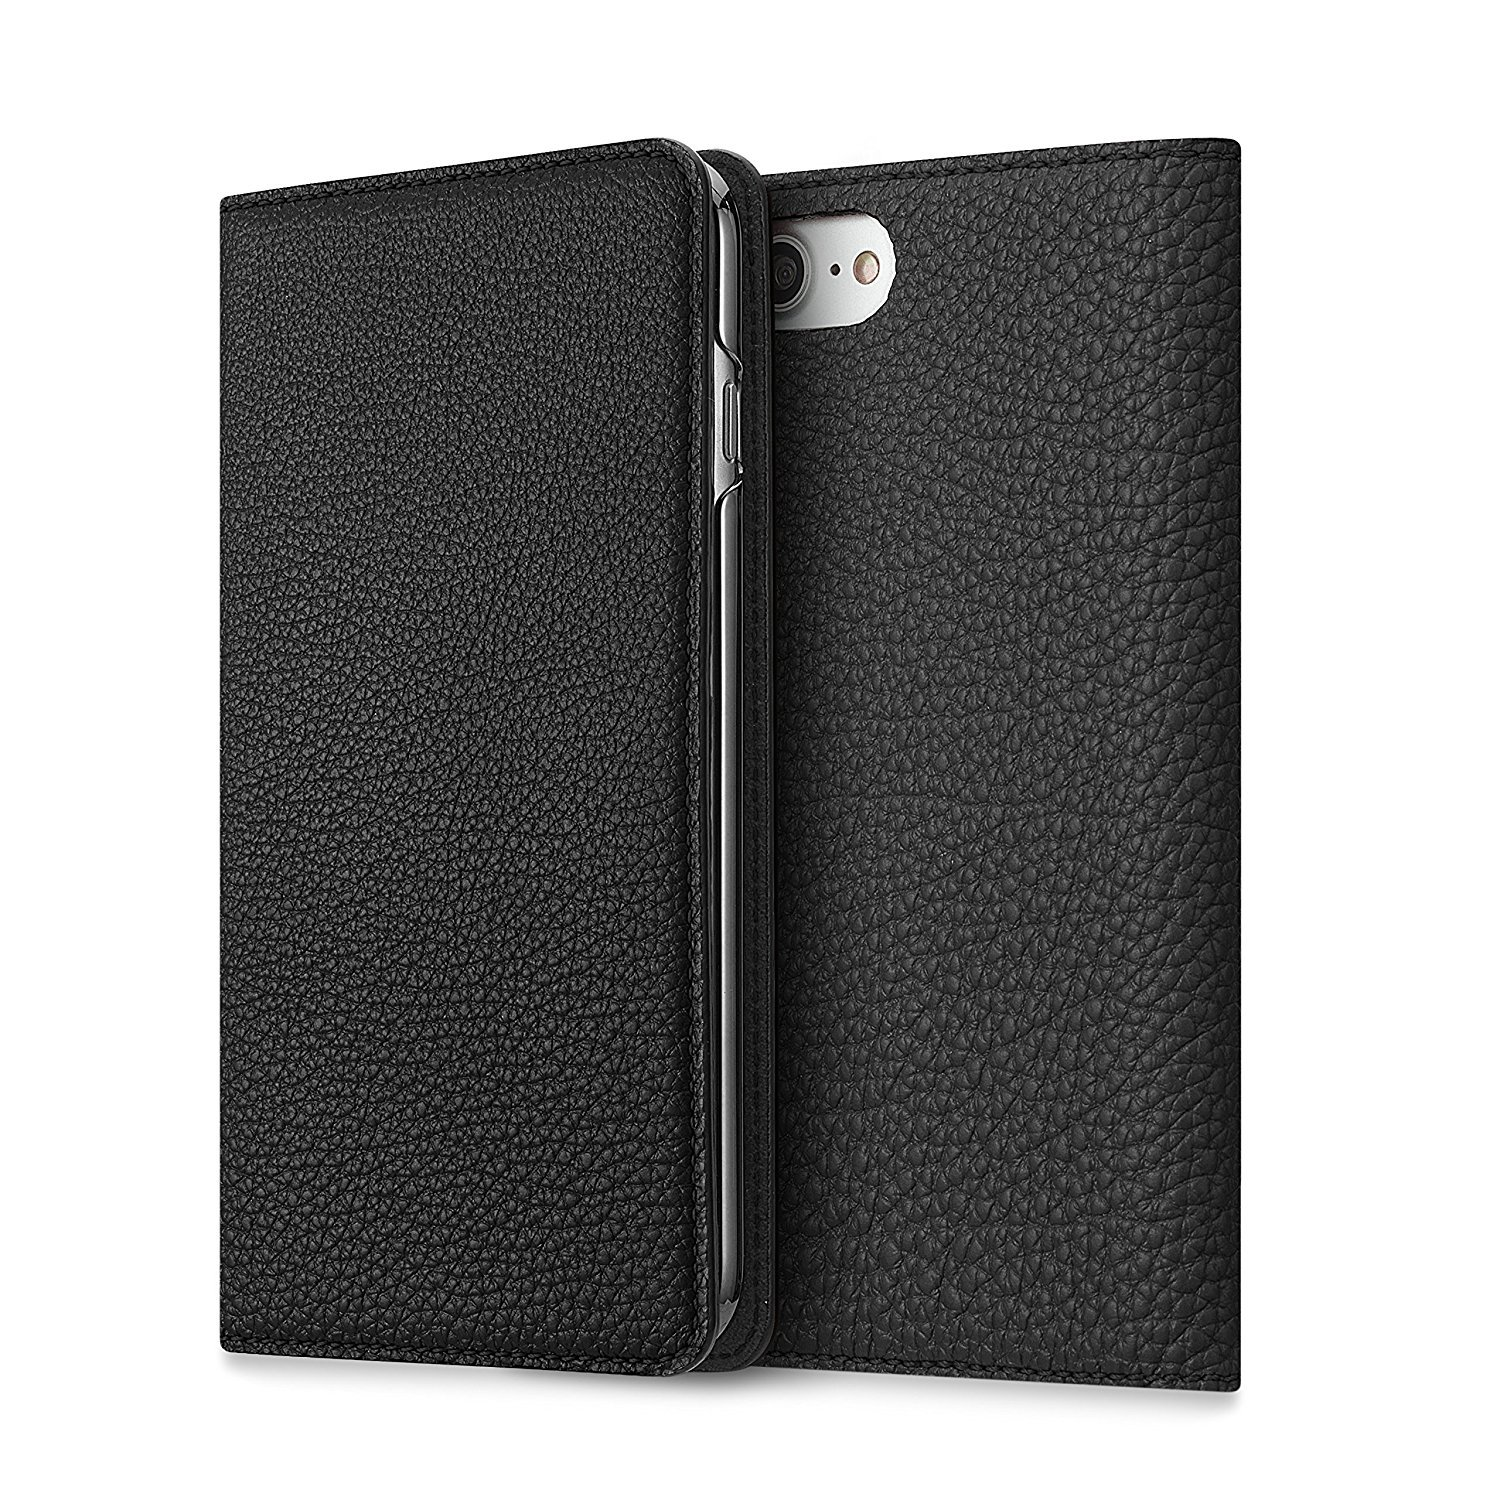 BONAVENTURA iPhone 7 Leather Wallet Case (Beautiful European Full-Grain Leather) | BONAVENTURA Folio Flip Leather Cover Case [iPhone 7 | BLACK]